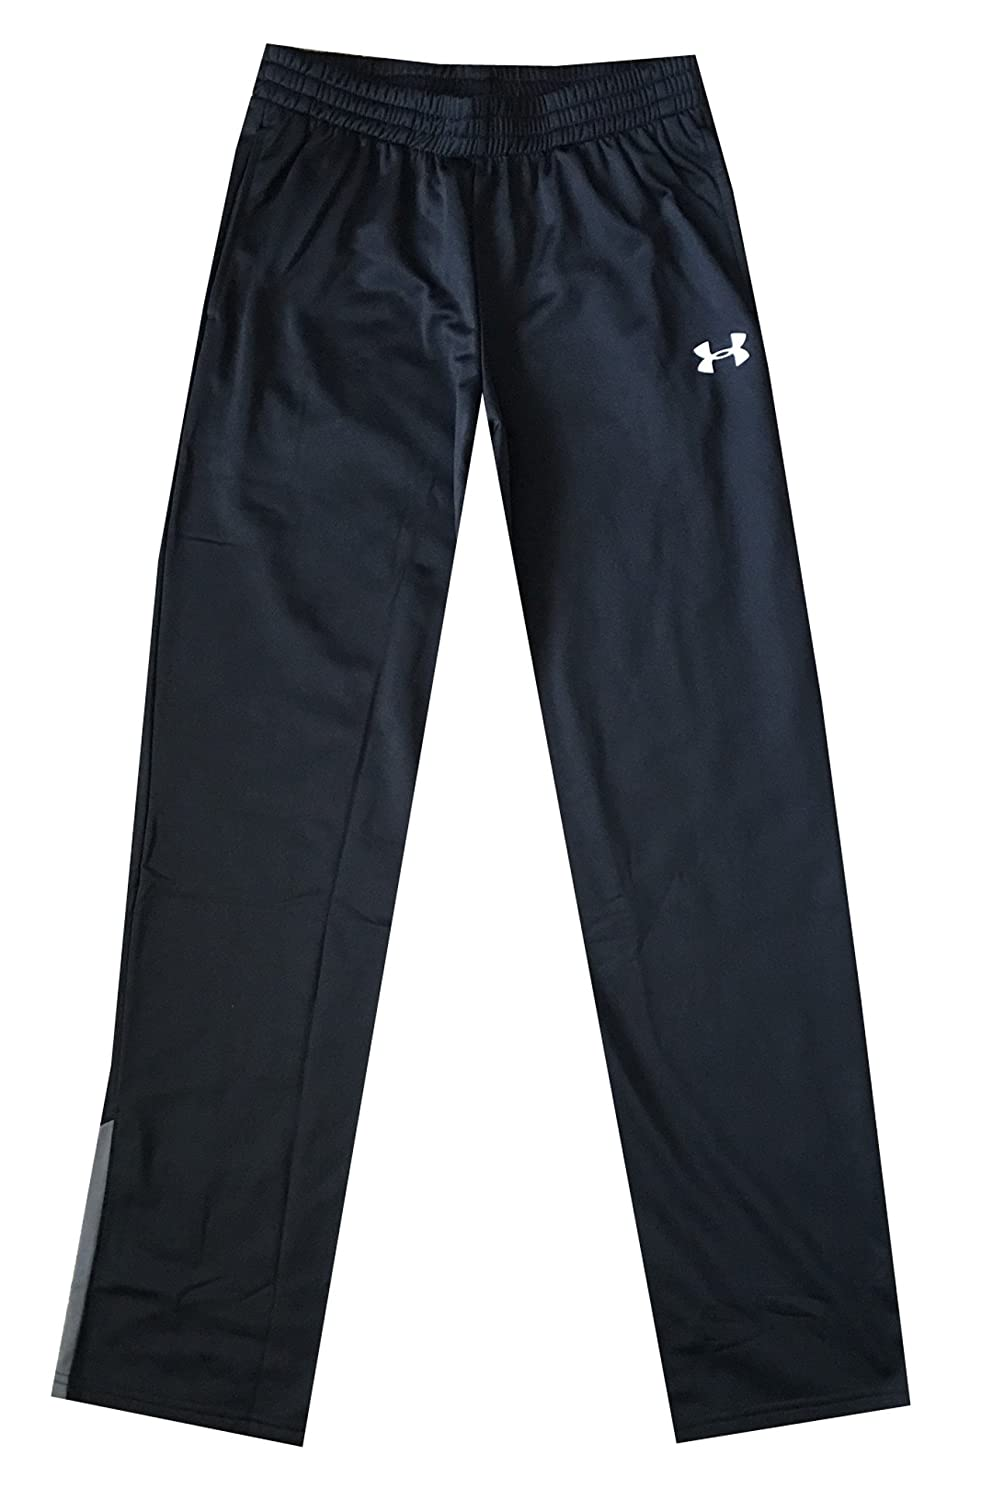 Under Armour Boys Bowler Athletic Pants